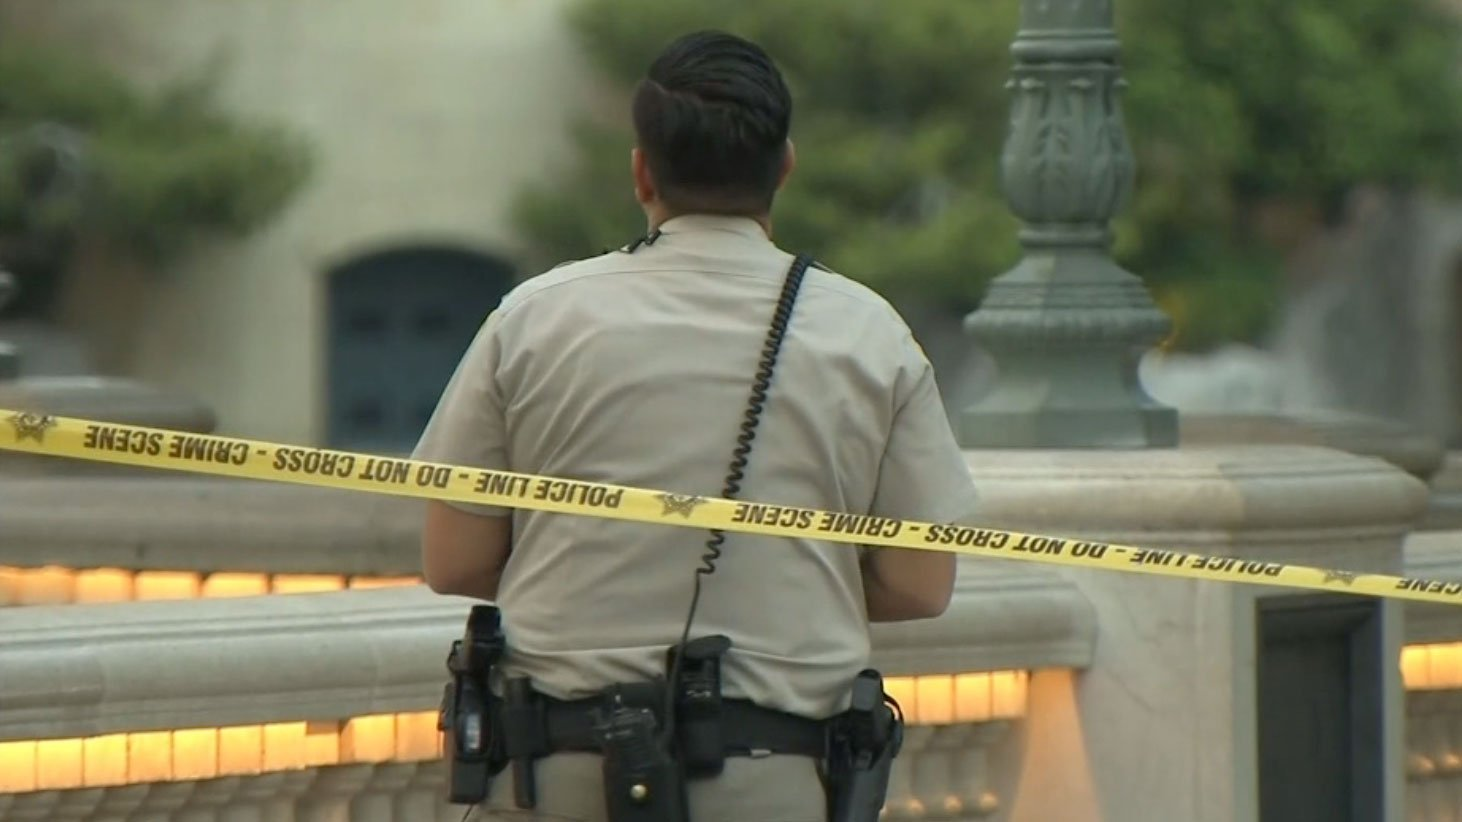 Shooting on Las Vegas Strip stemmed from argument